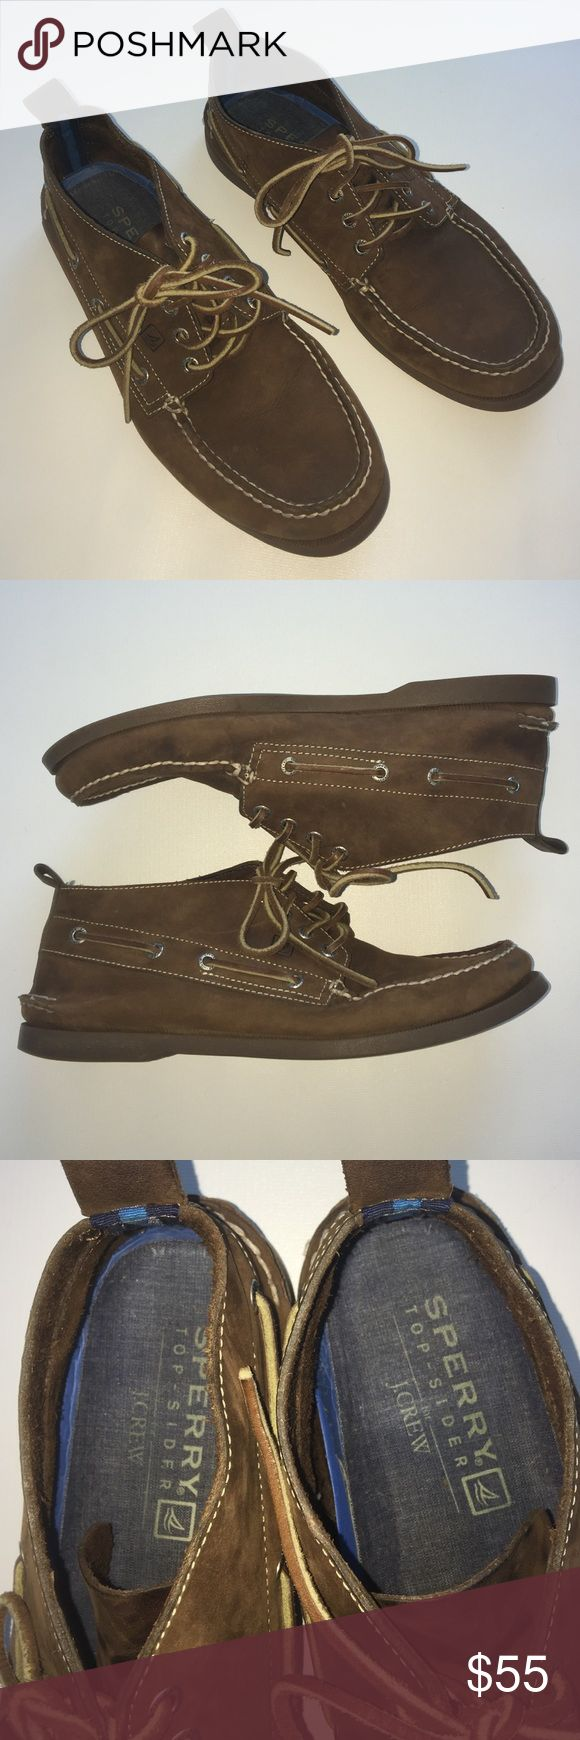 1 DAY SALE J Crew Sperry topsider high-top. Awesome shoes. Lightly worn. Sperry Top-Sider Shoes Boat Shoes